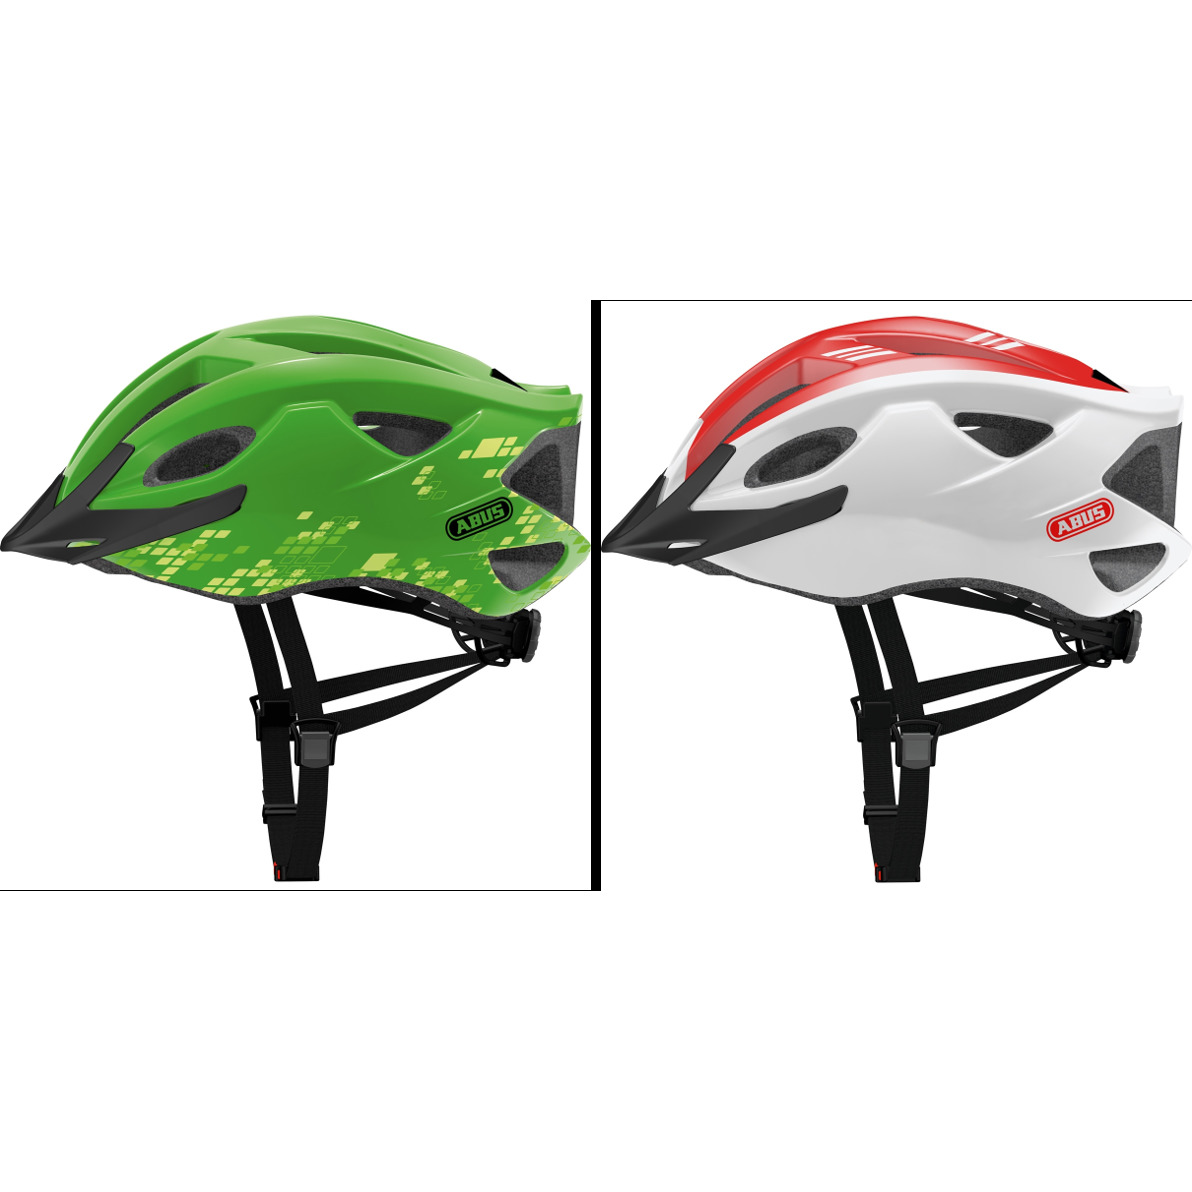 Abus S-Cension Helmet - Green Only Remaining (NOW JUST £9.99)